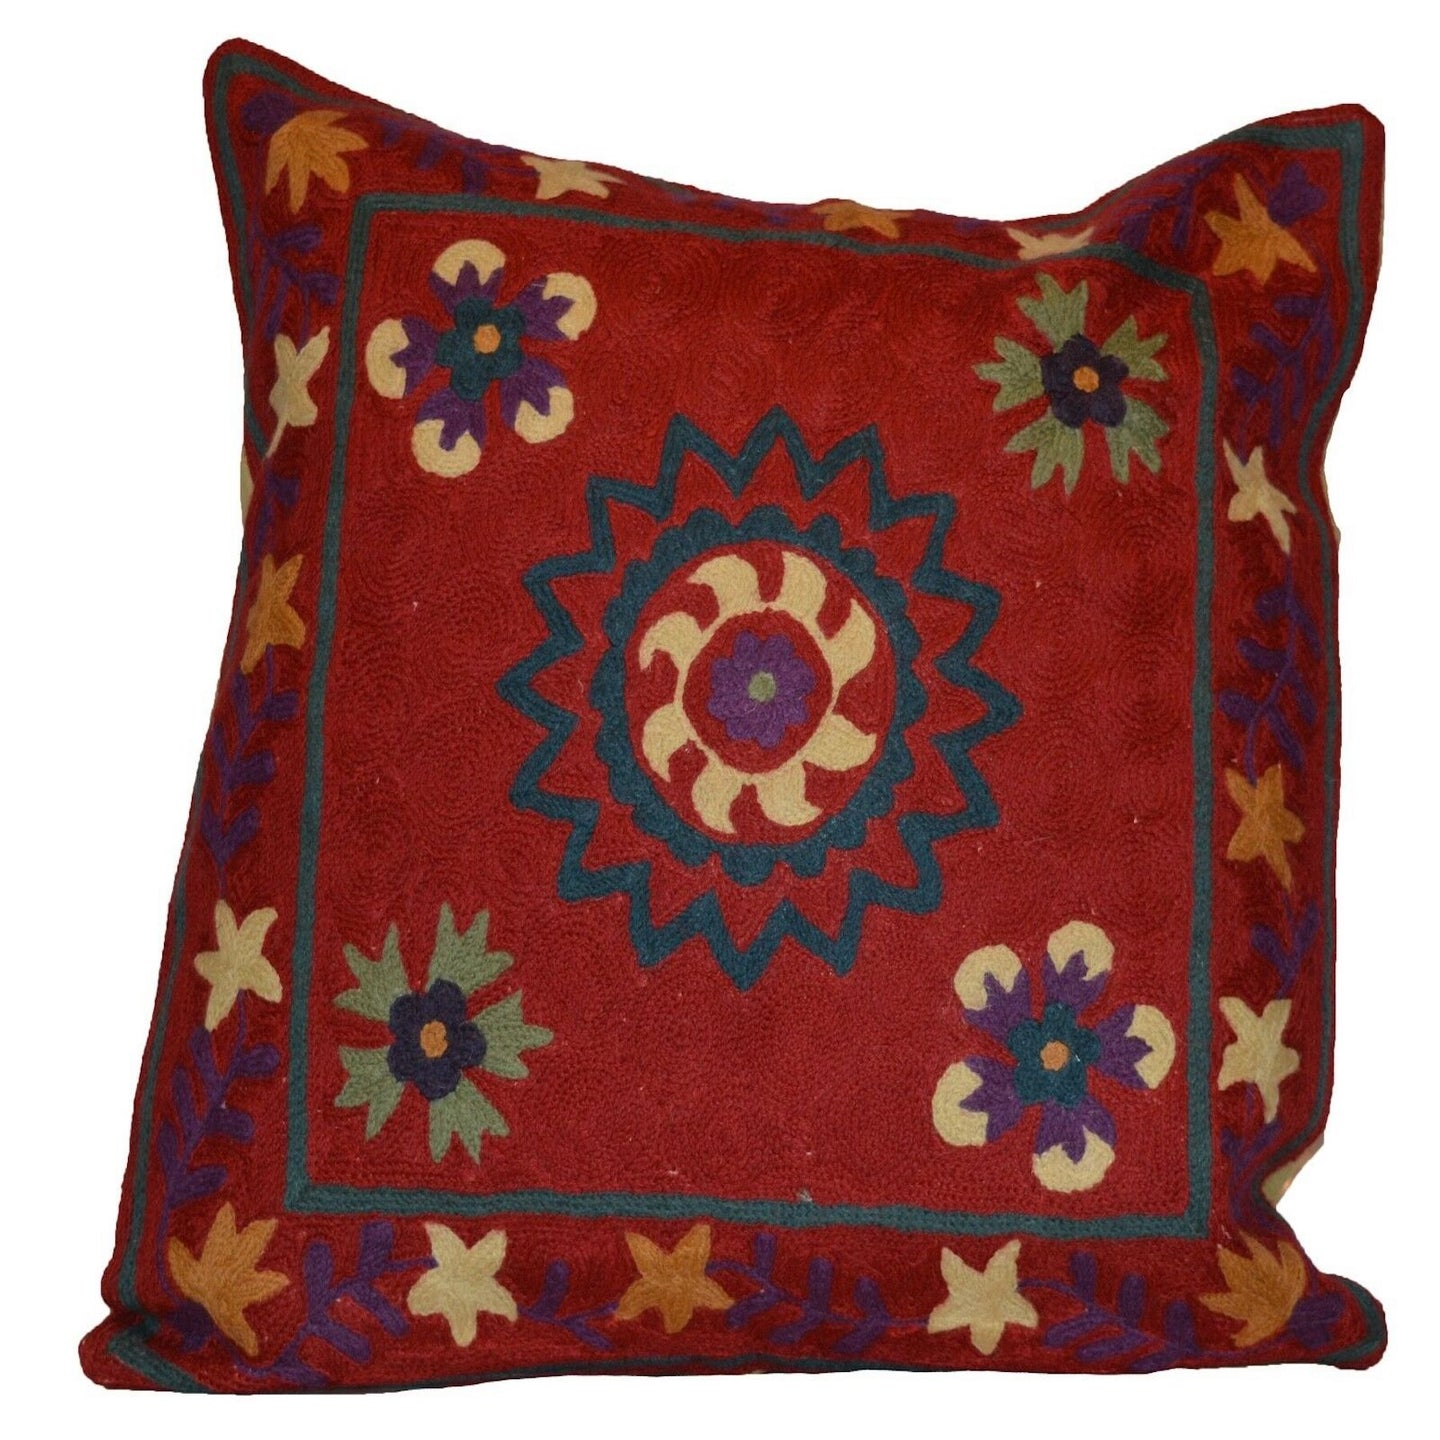 Red Southwestern Style Hand-Woven Kilim Pillow Cover Brpsf-2127